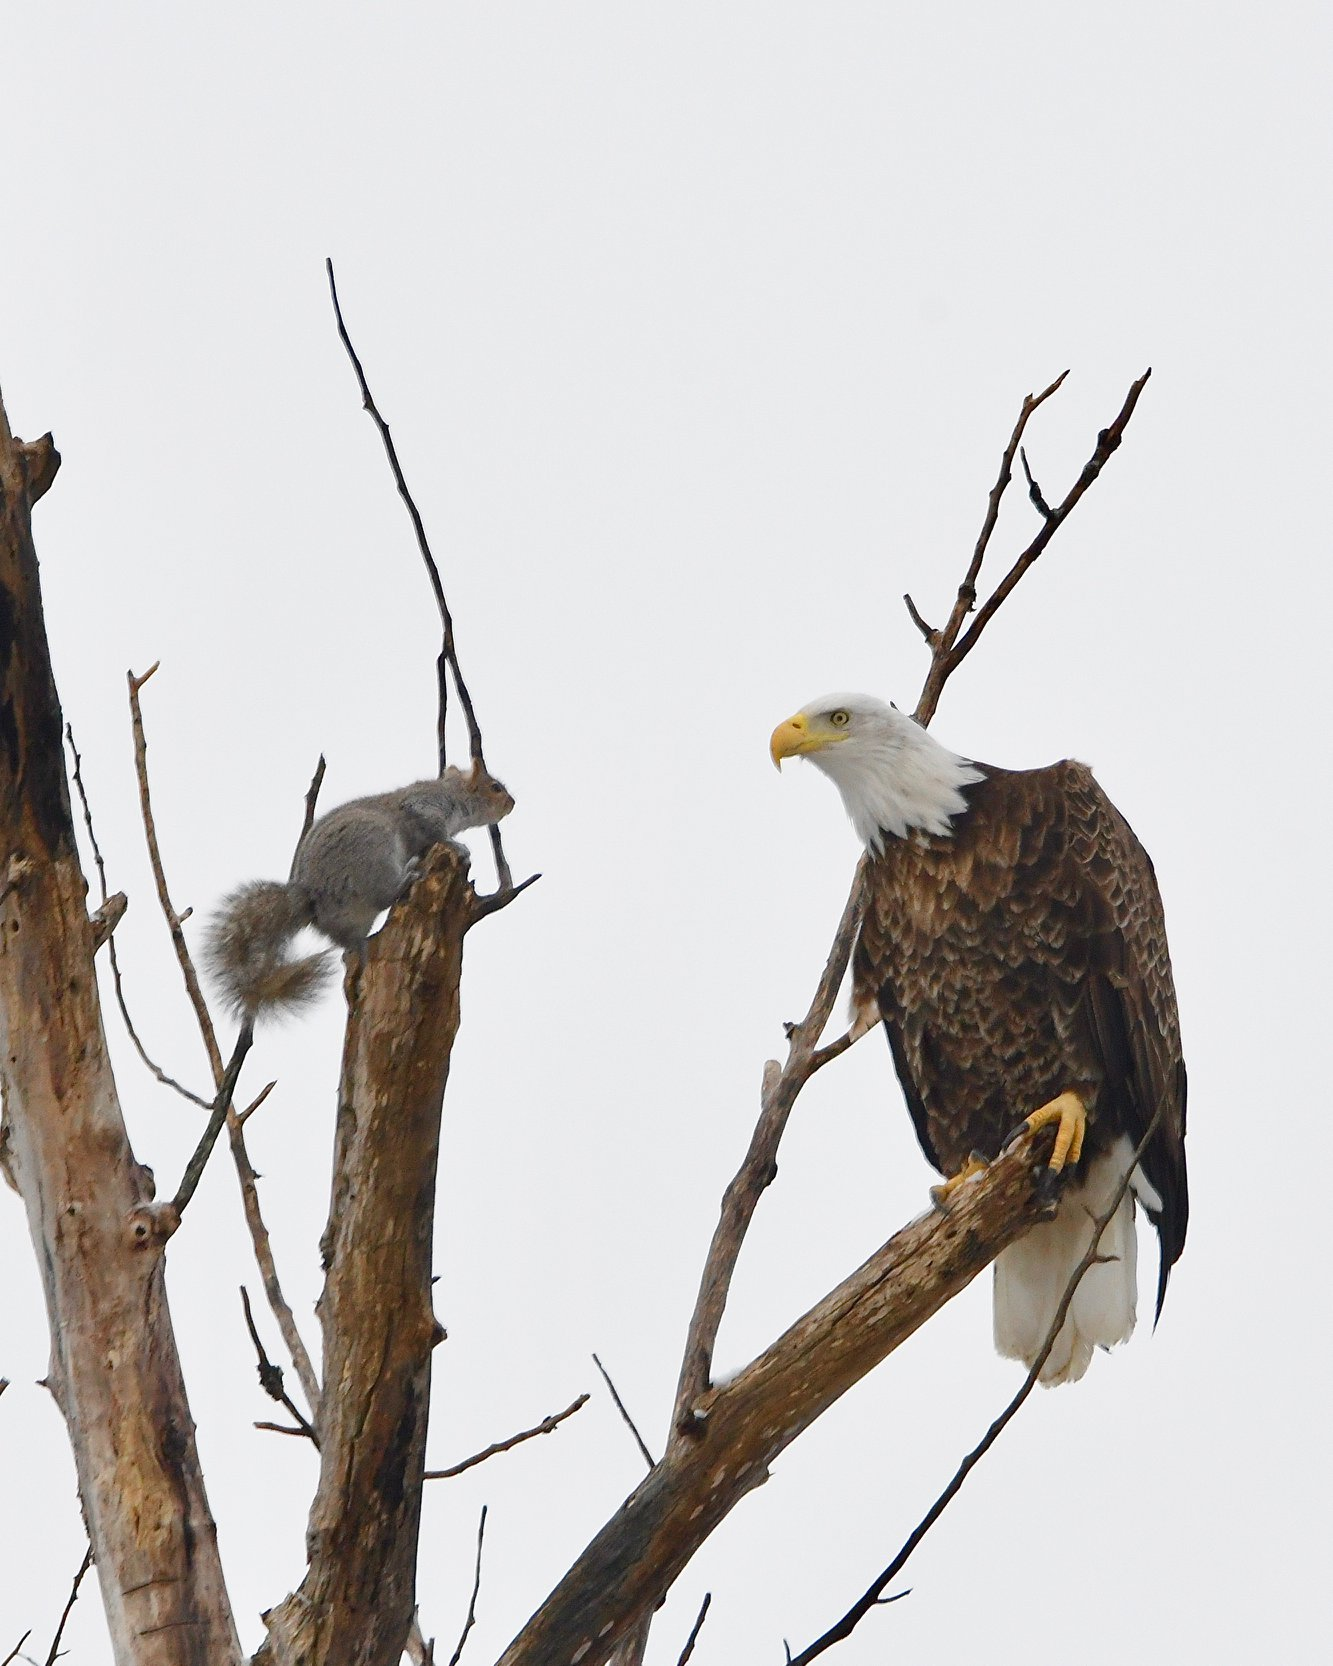 Gray Squirrel and Bald Eagle in staring match